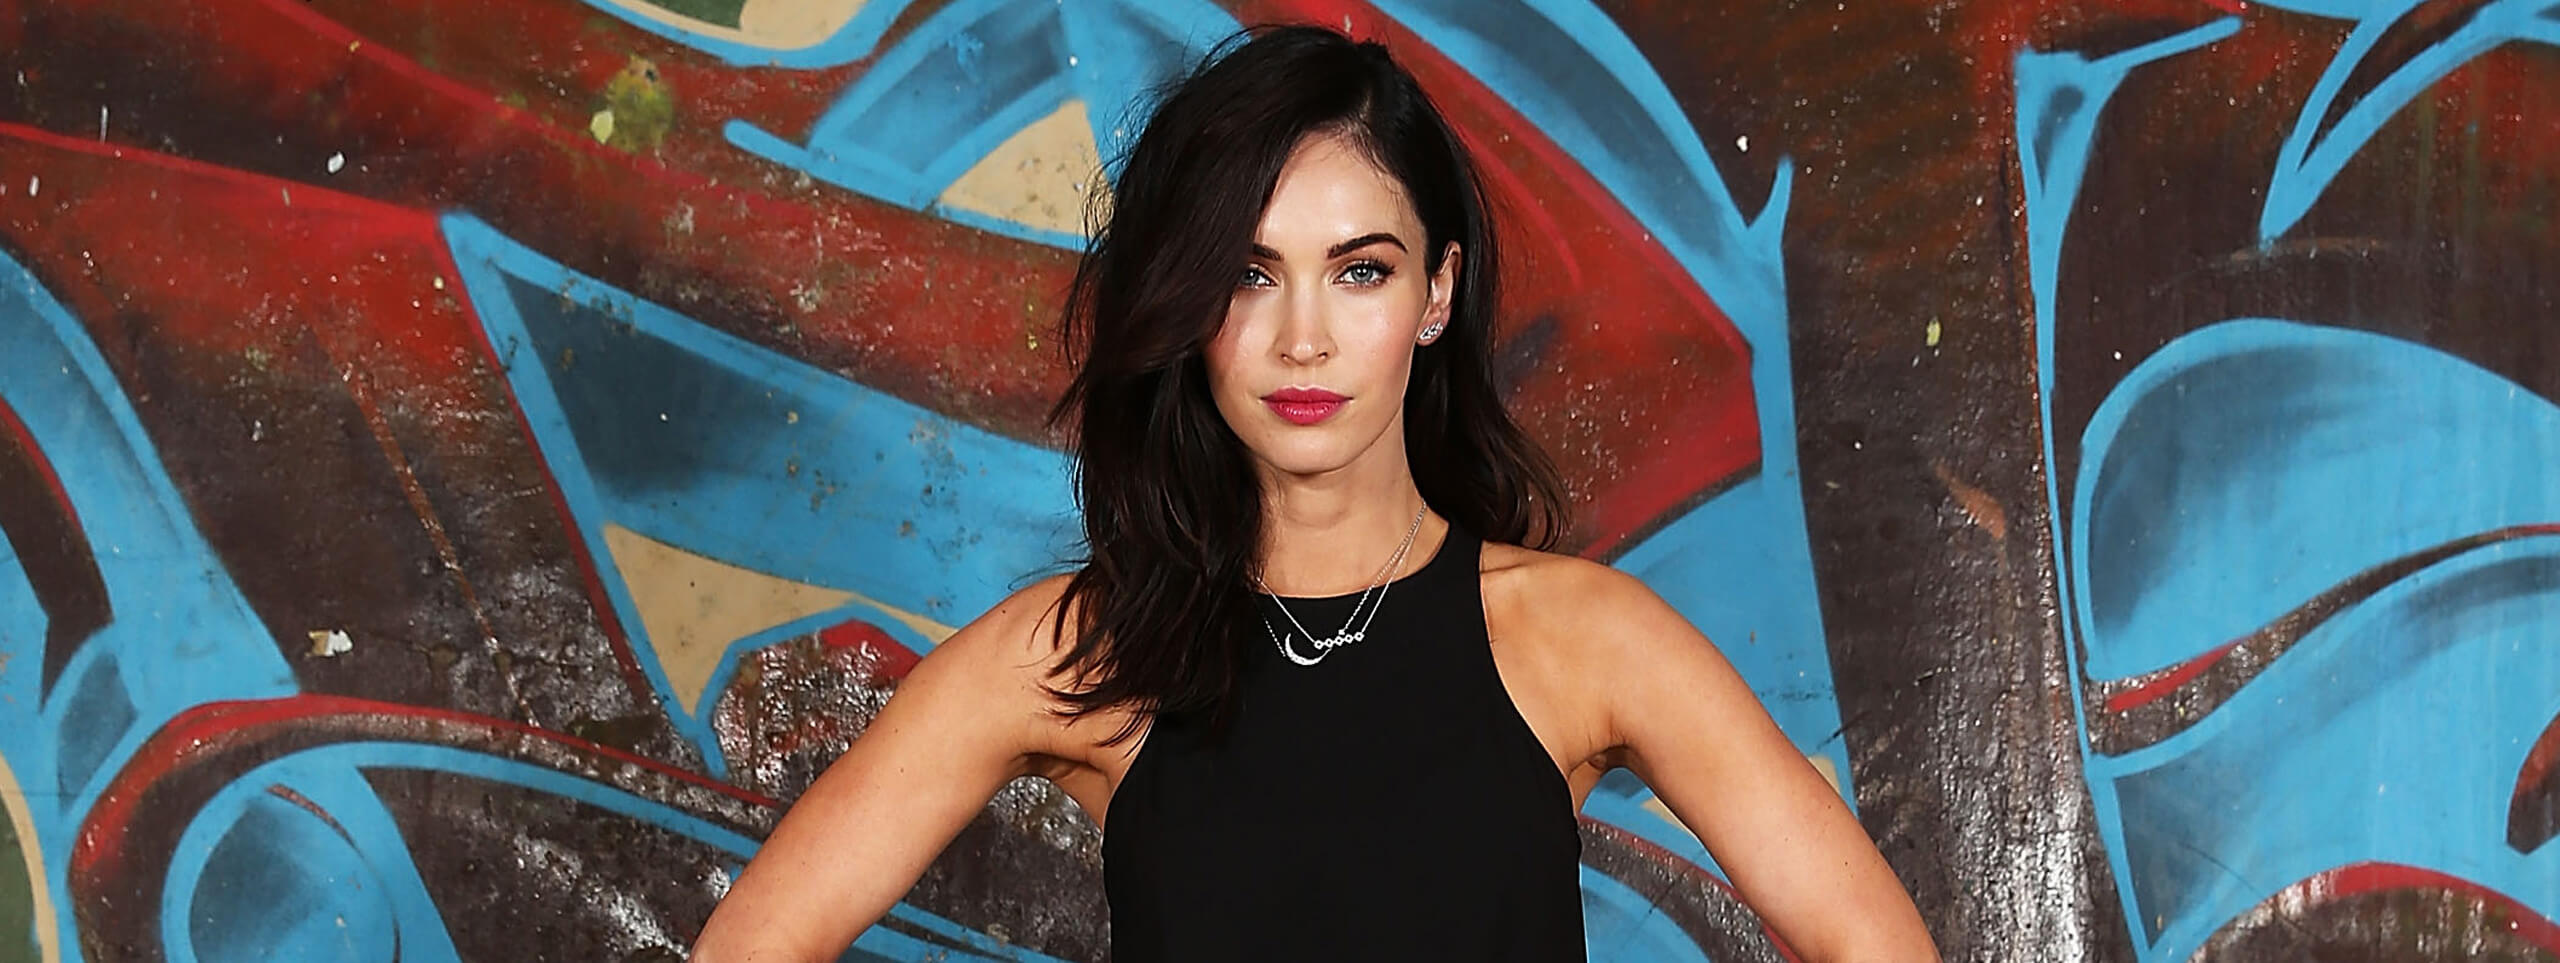 Color cabello negro Megan Fox